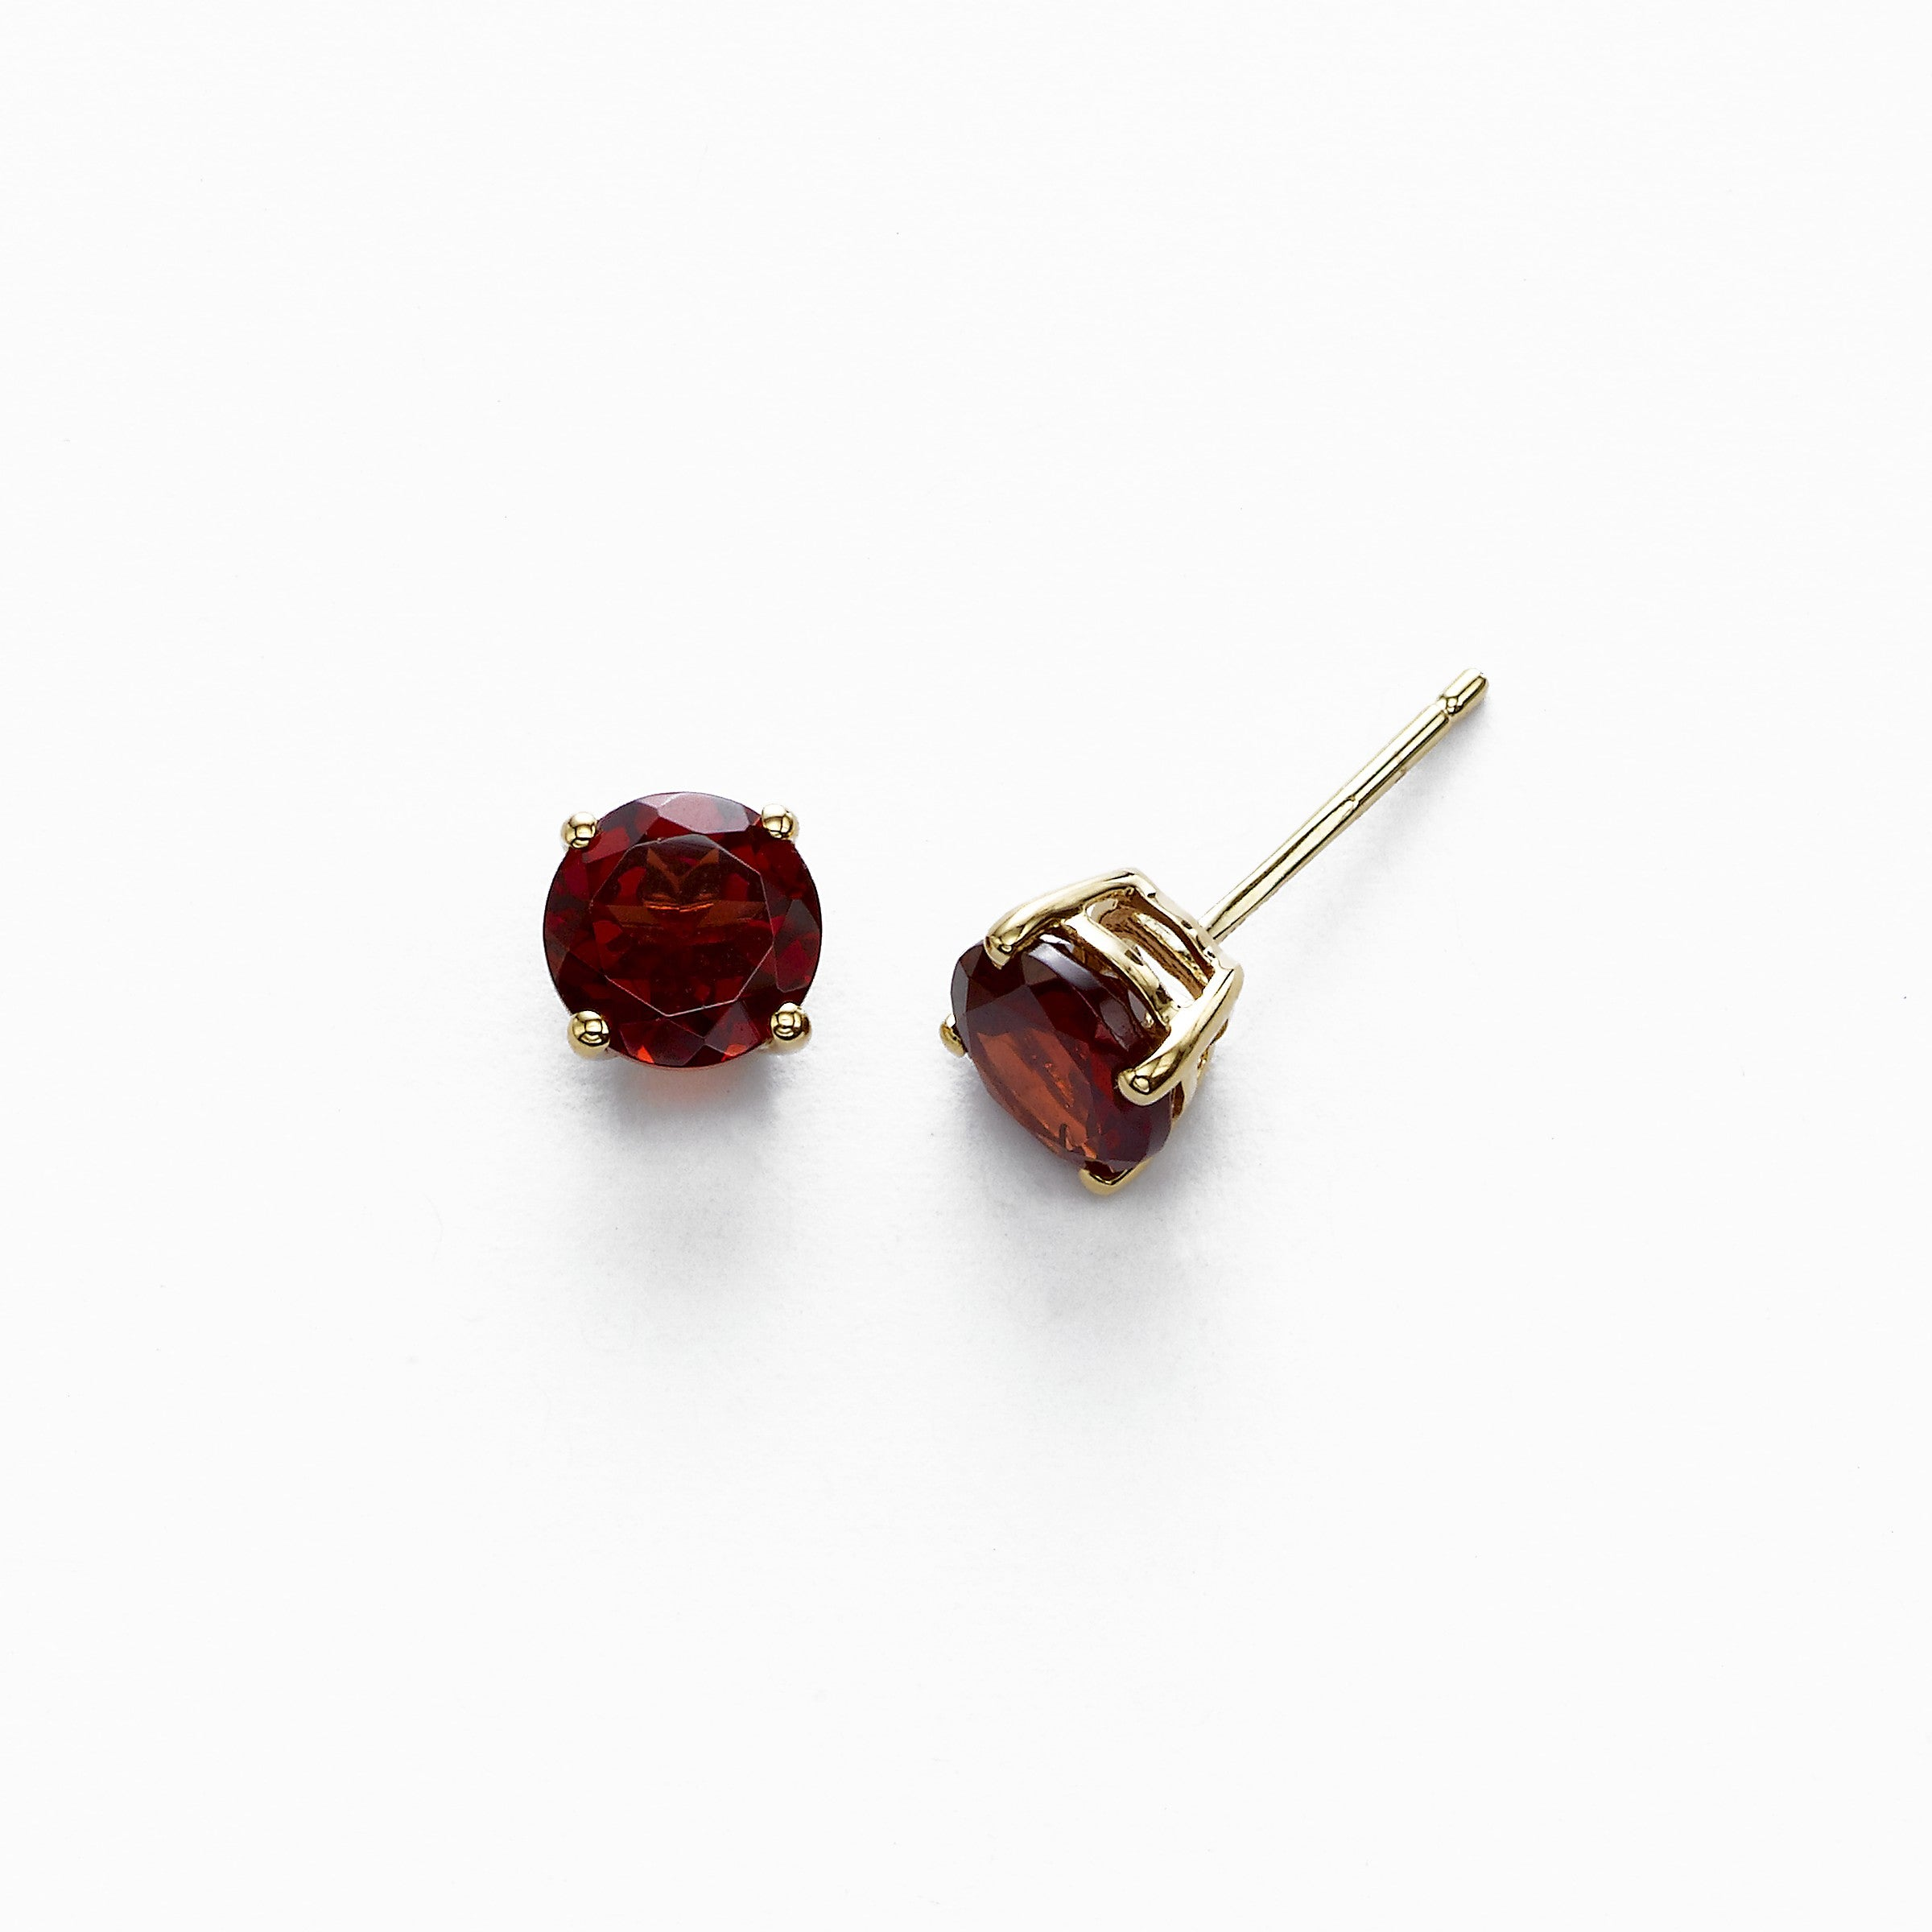 Round Garnet Stud Earrings, 6 MM, 14K Yellow Gold